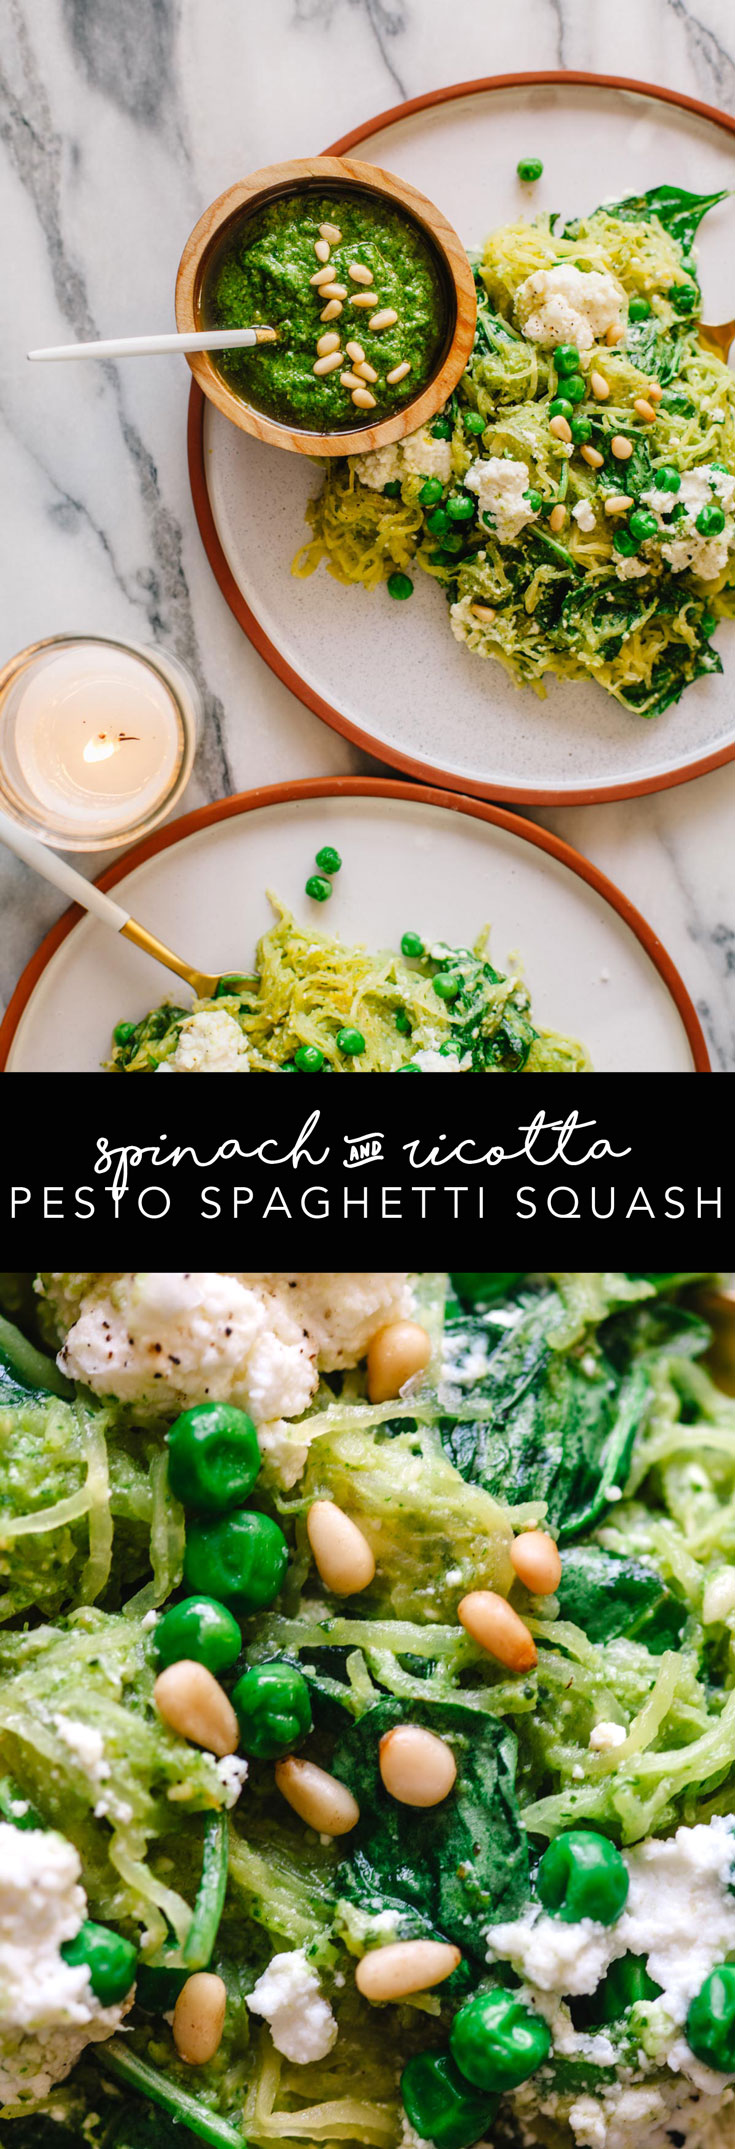 Looking for an easy recovery meal from the holidays? This Spinach and Ricotta Pesto Spaghetti Squash is the best solution! Such an easy vegetarian weeknight meal. #vegetarian #dinner #healthy | Brewing Happiness